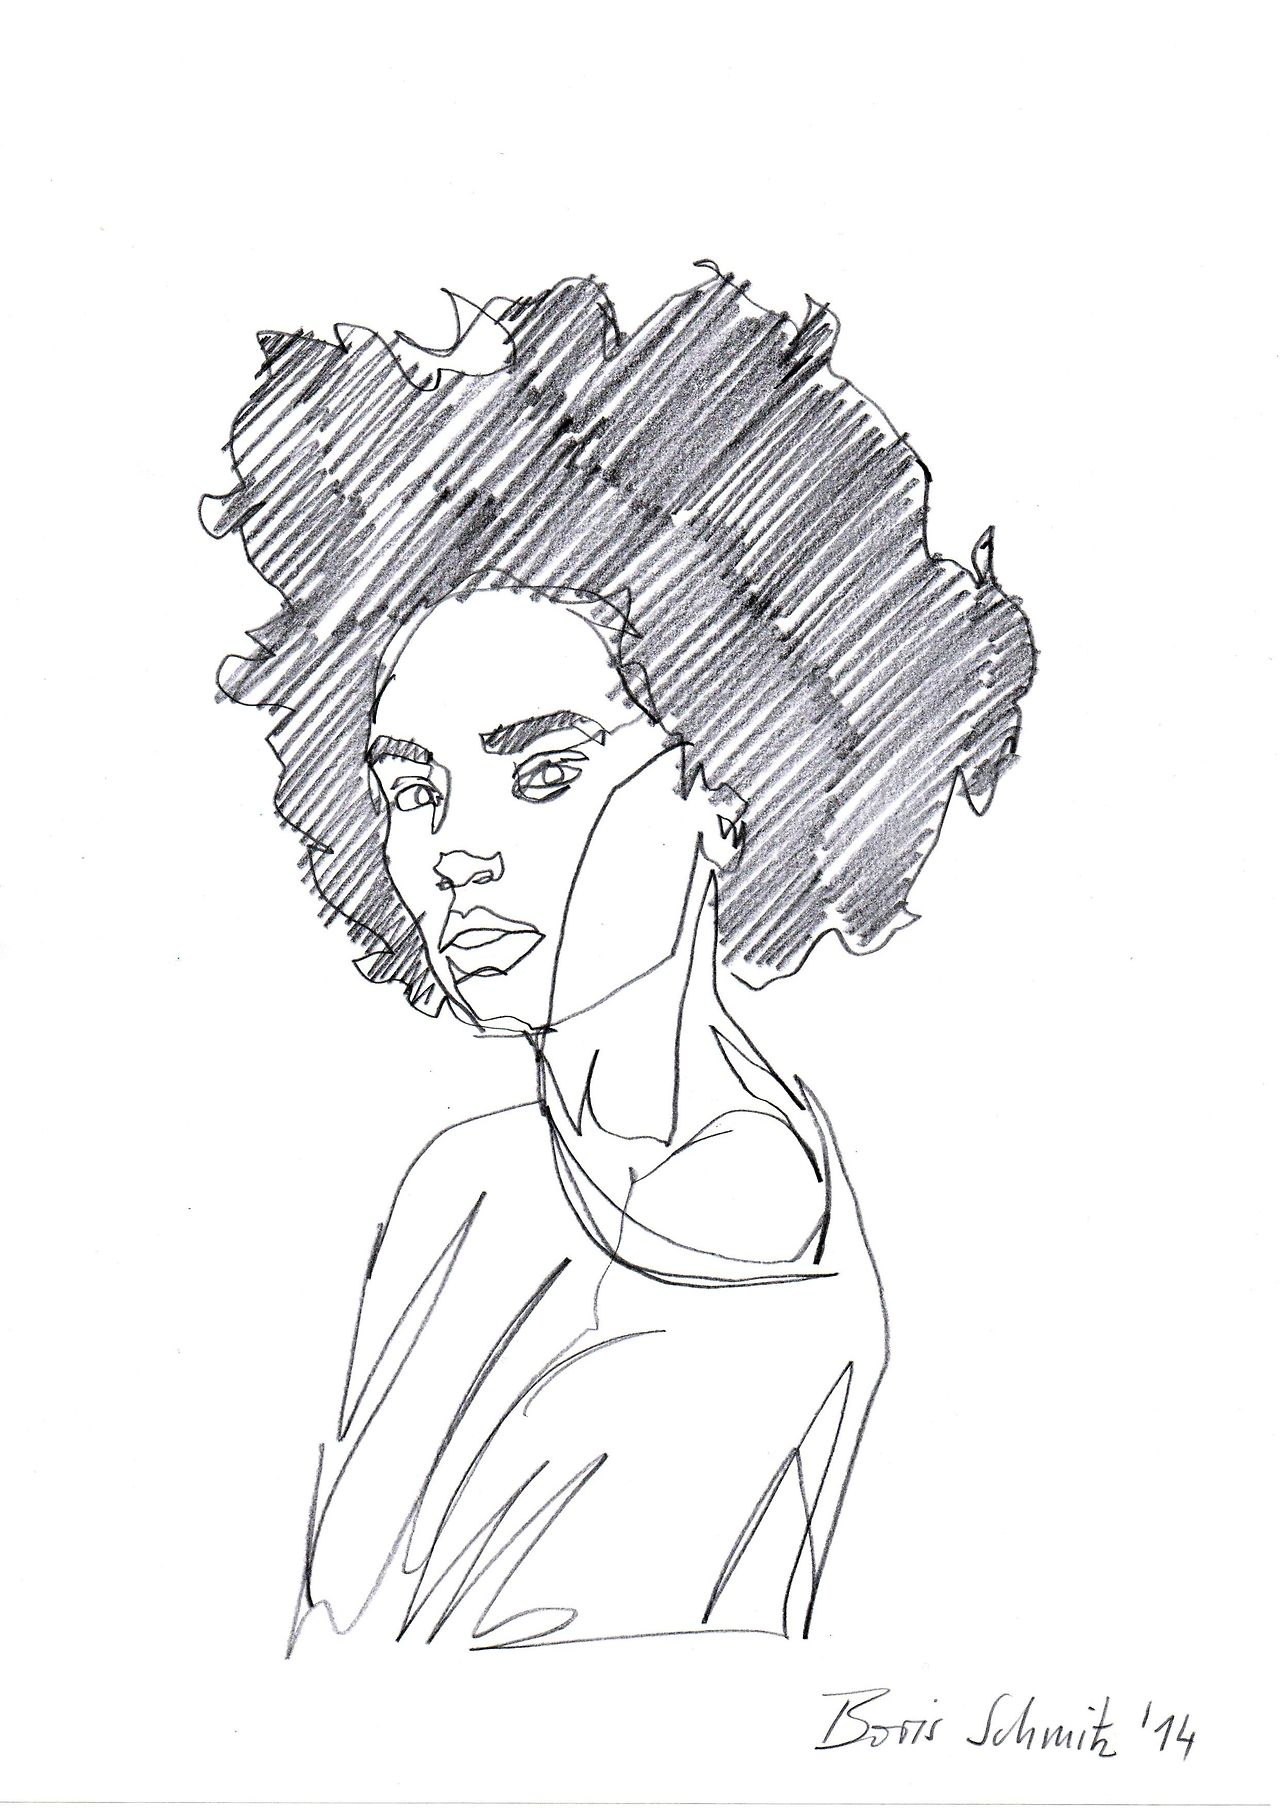 Line Drawing Hair : Borisschmitz quot gaze one continuous line drawing by